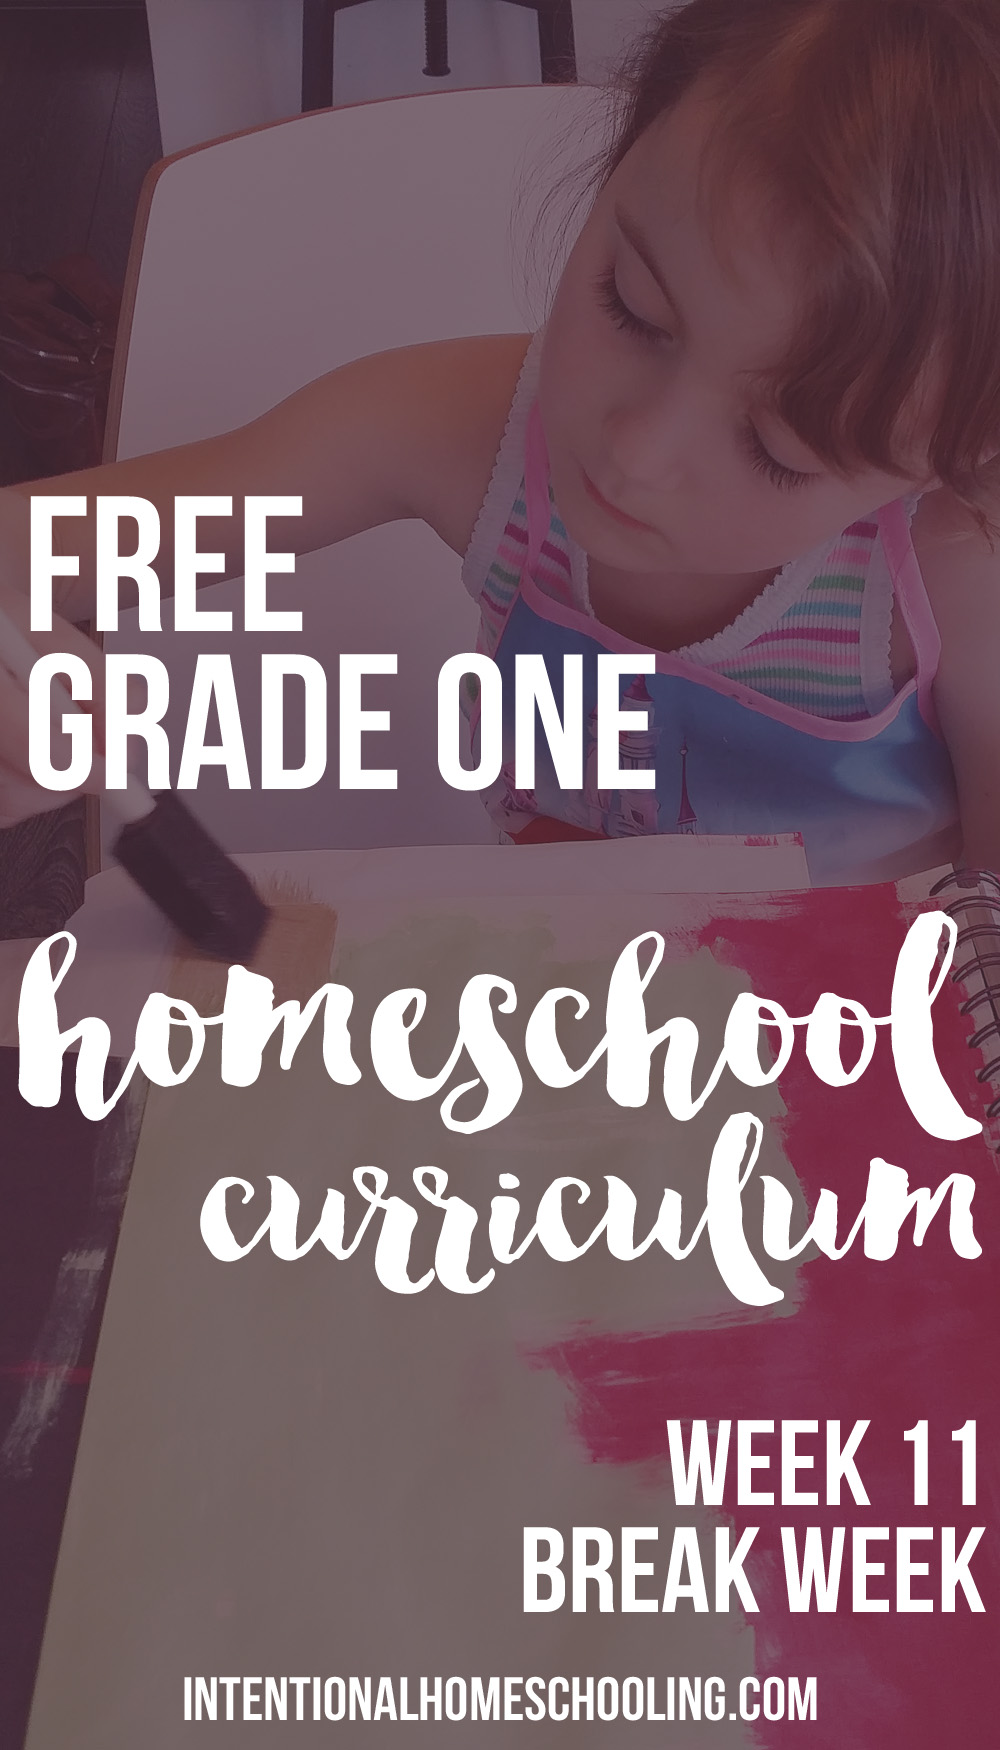 Free Grade One Homeschool Curriculum - week 11 - break week!